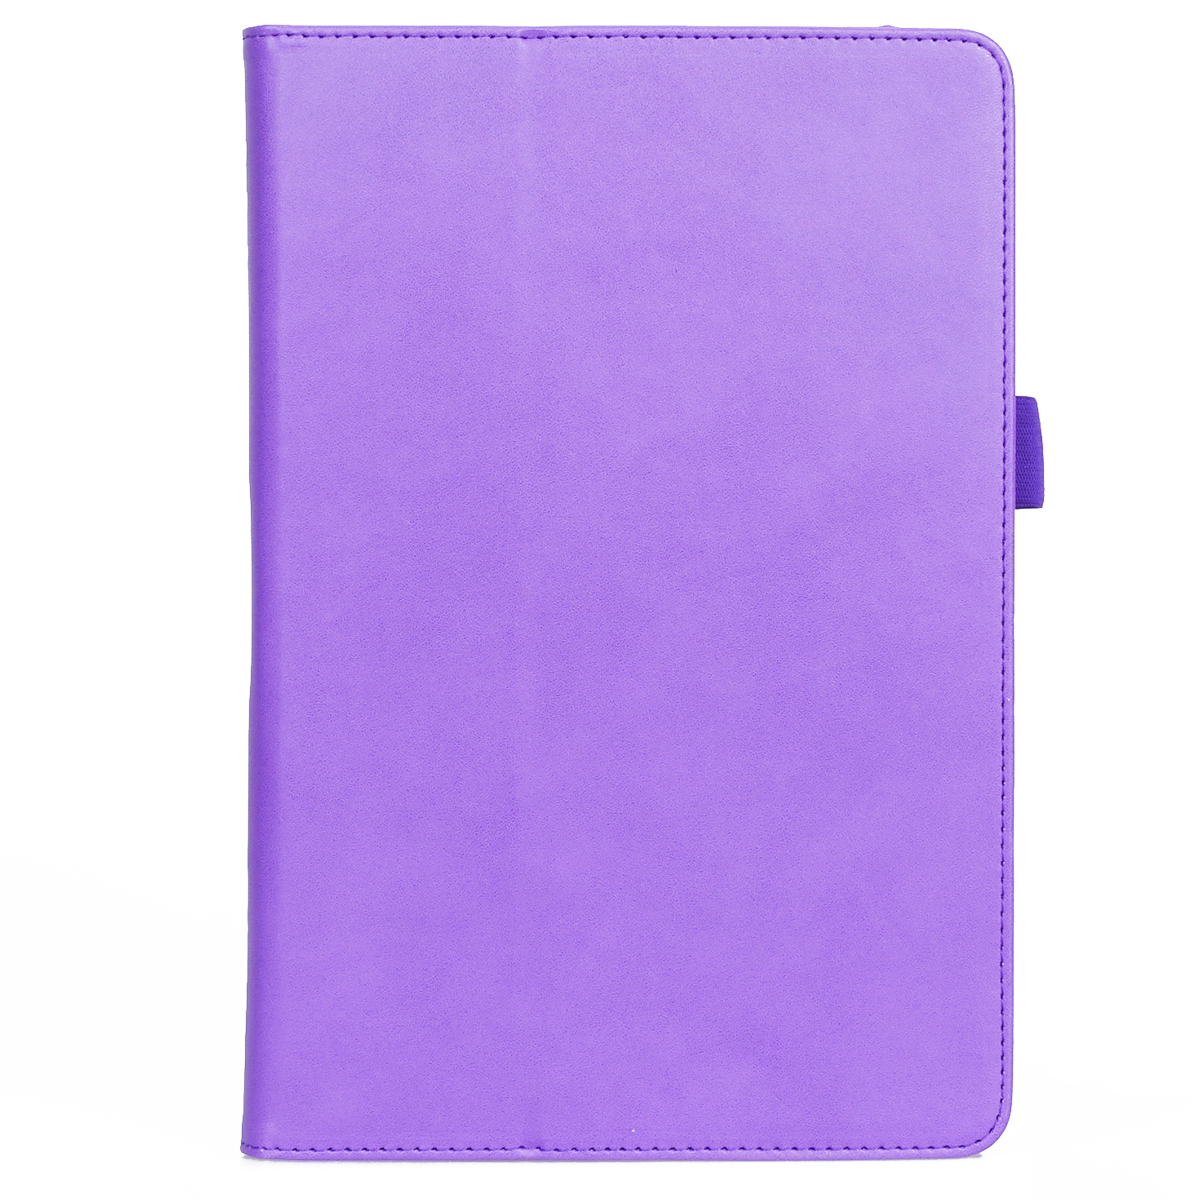 For HUAWEI M5 lite 10.1 Retro Pattern PU Leather Protective Case with Hand Support Pen Slot Sleep Function purple_HUAWEI M5 lite 10.1